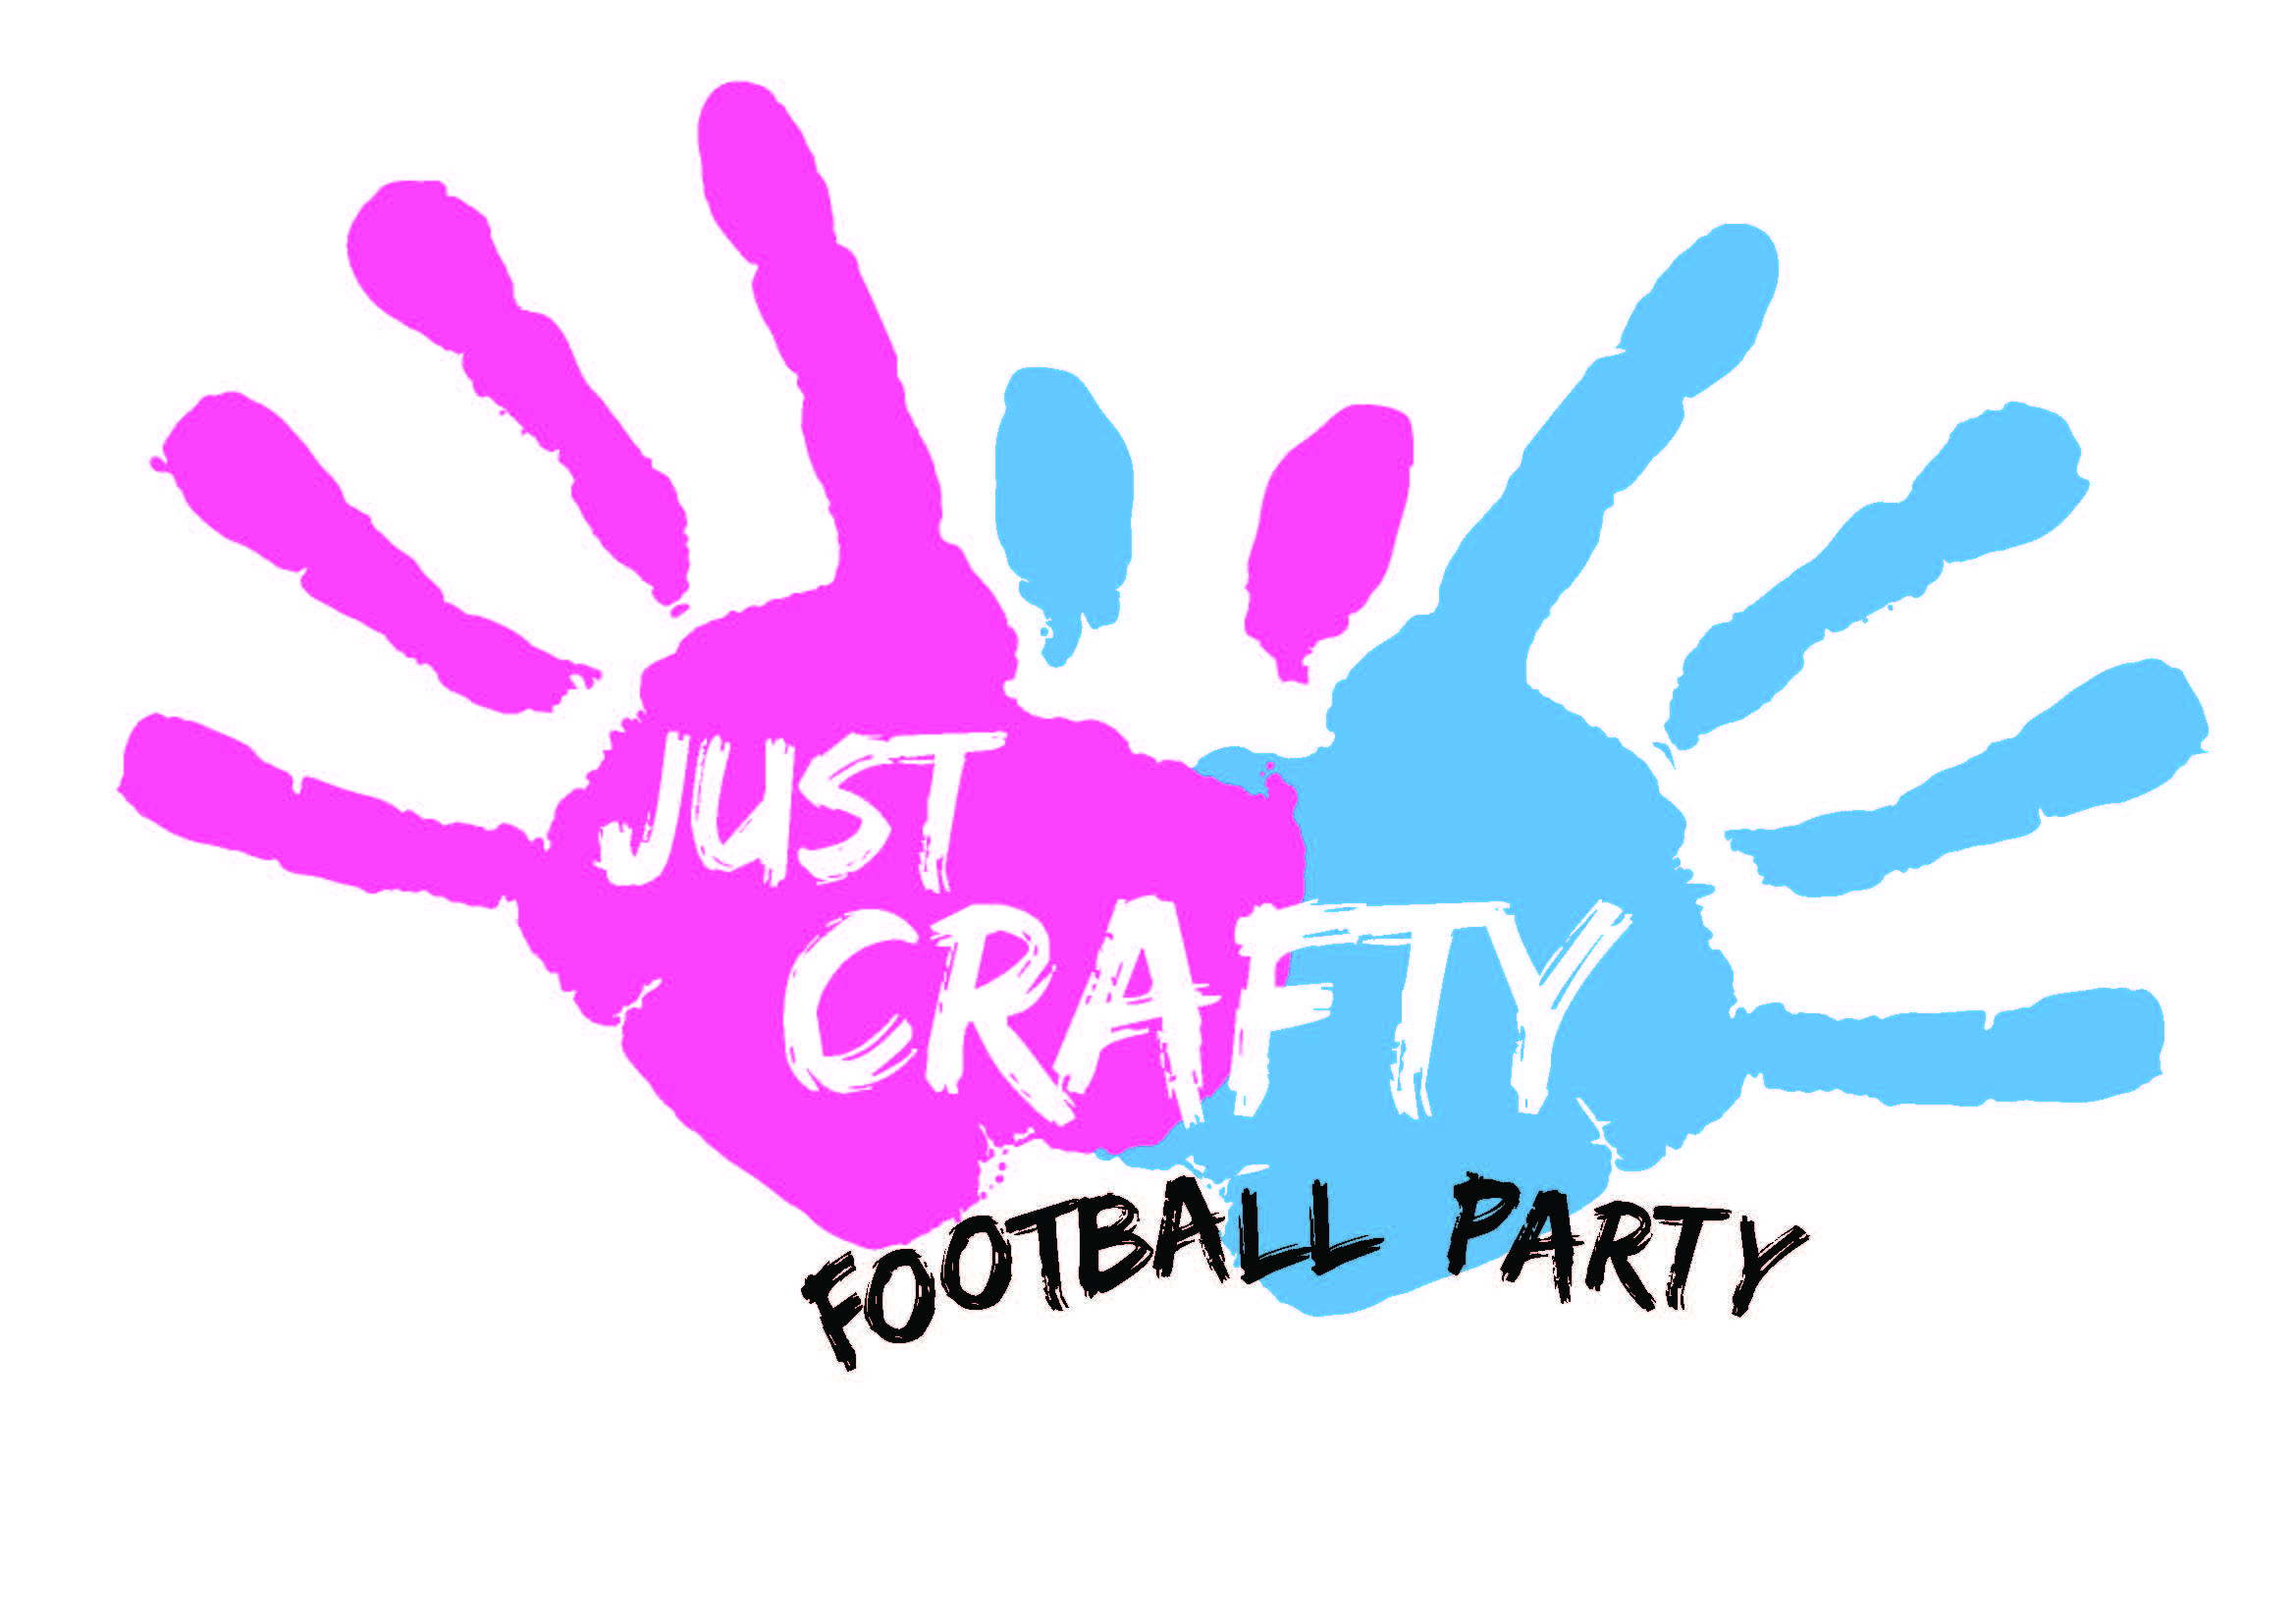 justcrafty-football party